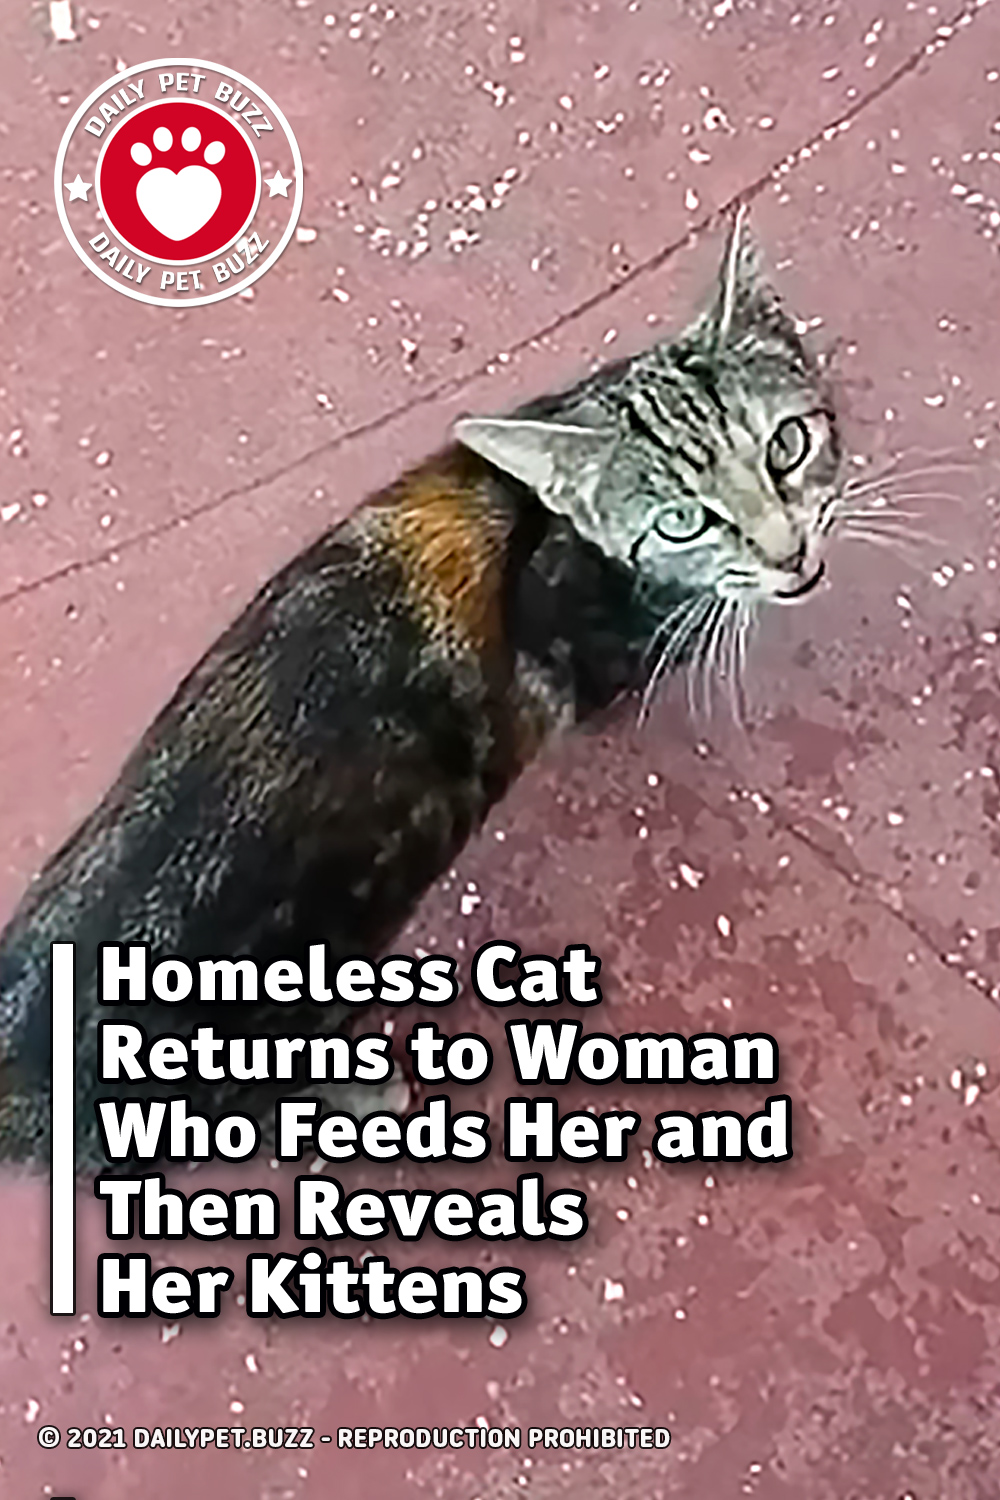 Homeless Cat Returns to Woman Who Feeds Her and Then Reveals Her Kittens